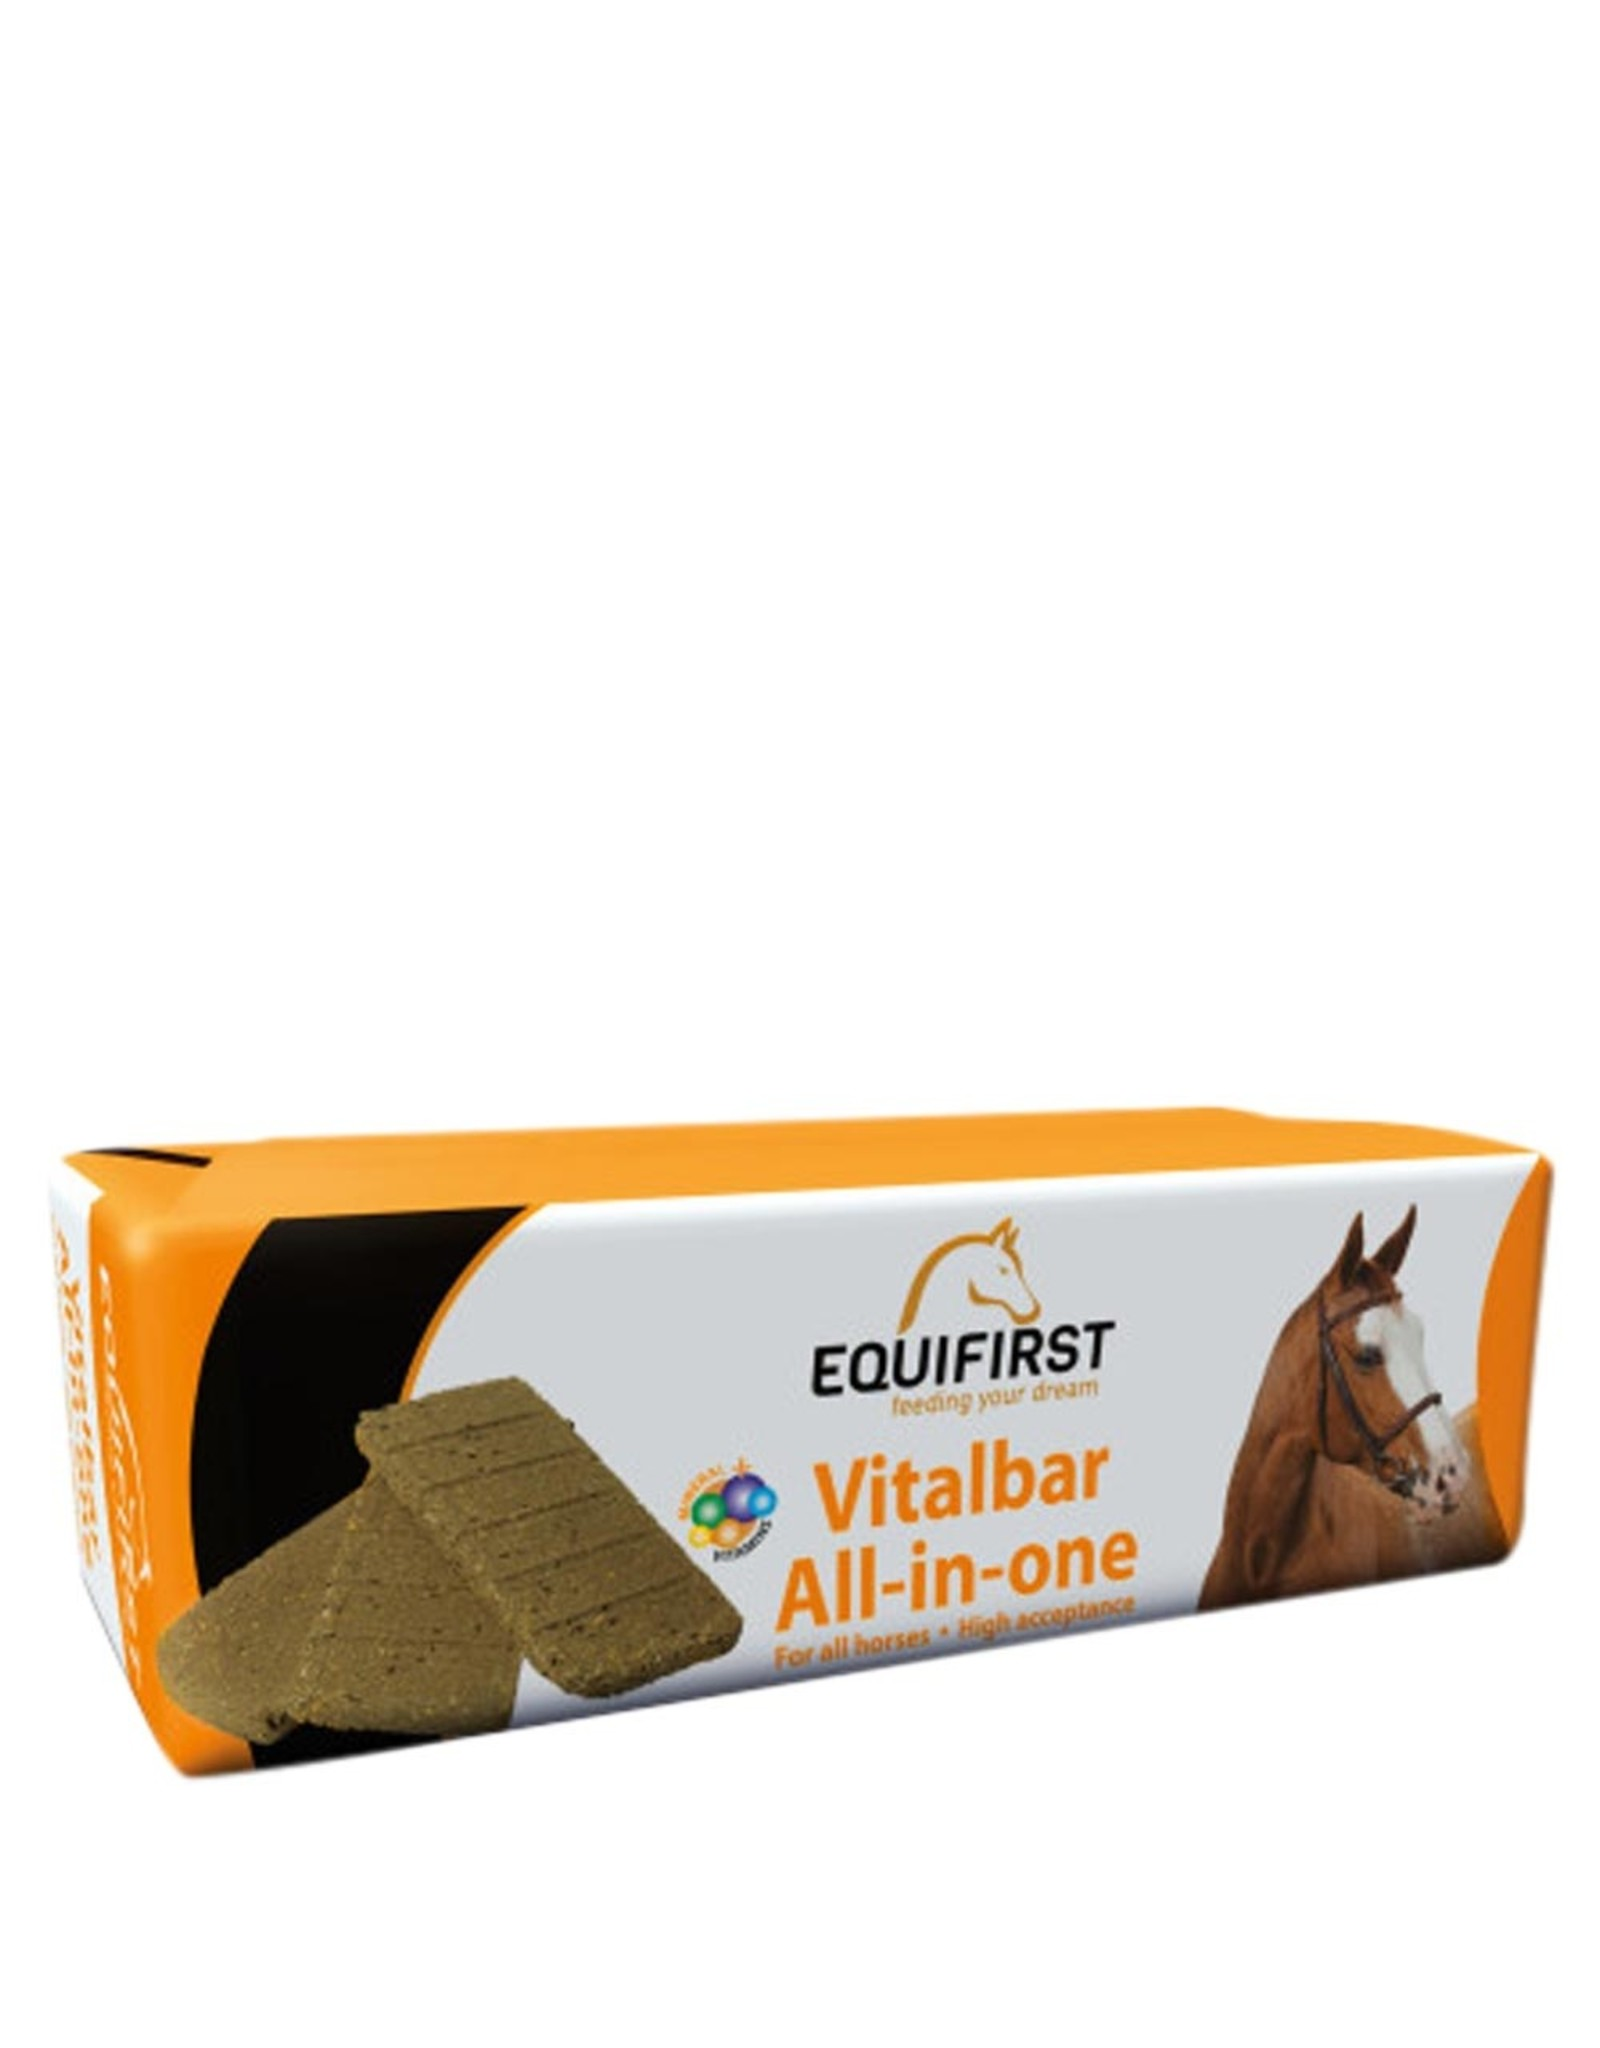 Equifirst Equifirst Vitalbar All-in-one